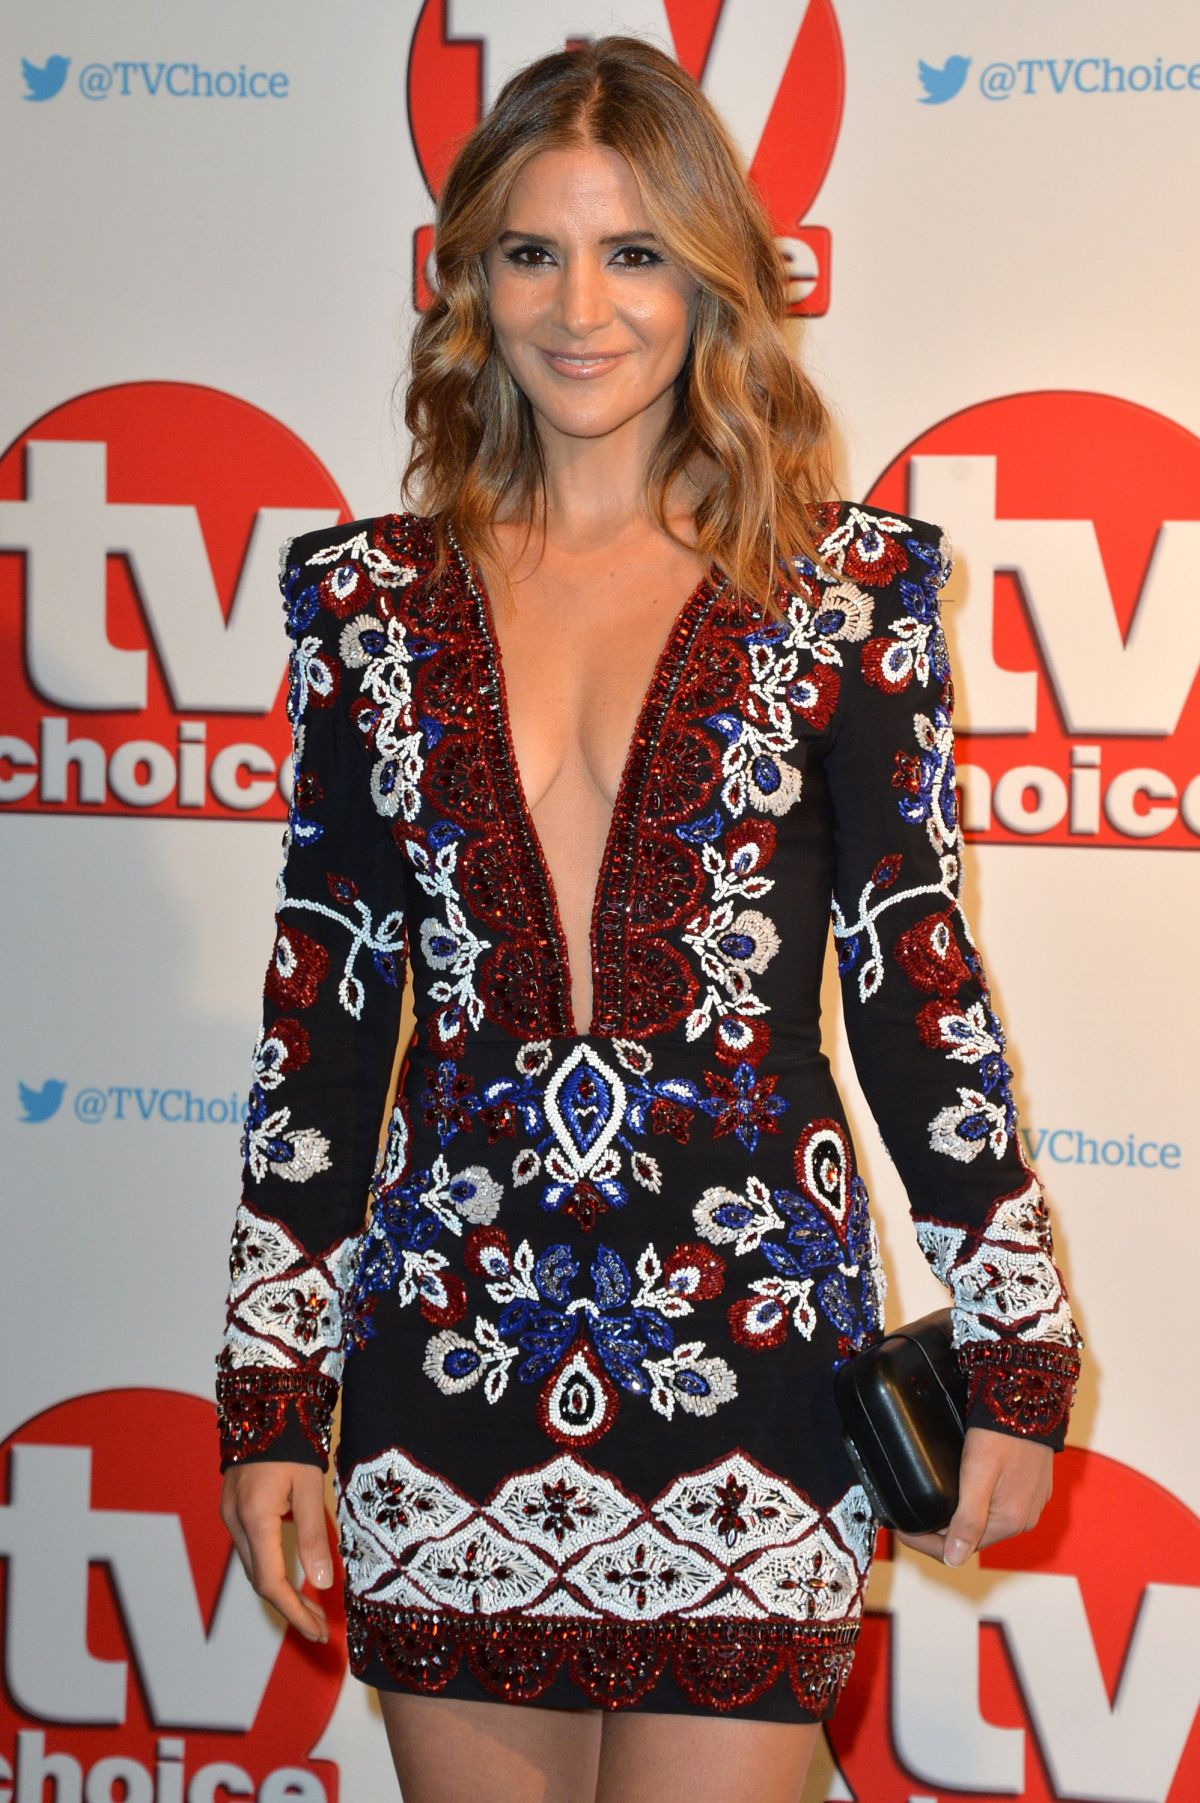 AMANDA BYRAM at TV Choice Awards 2015 in London